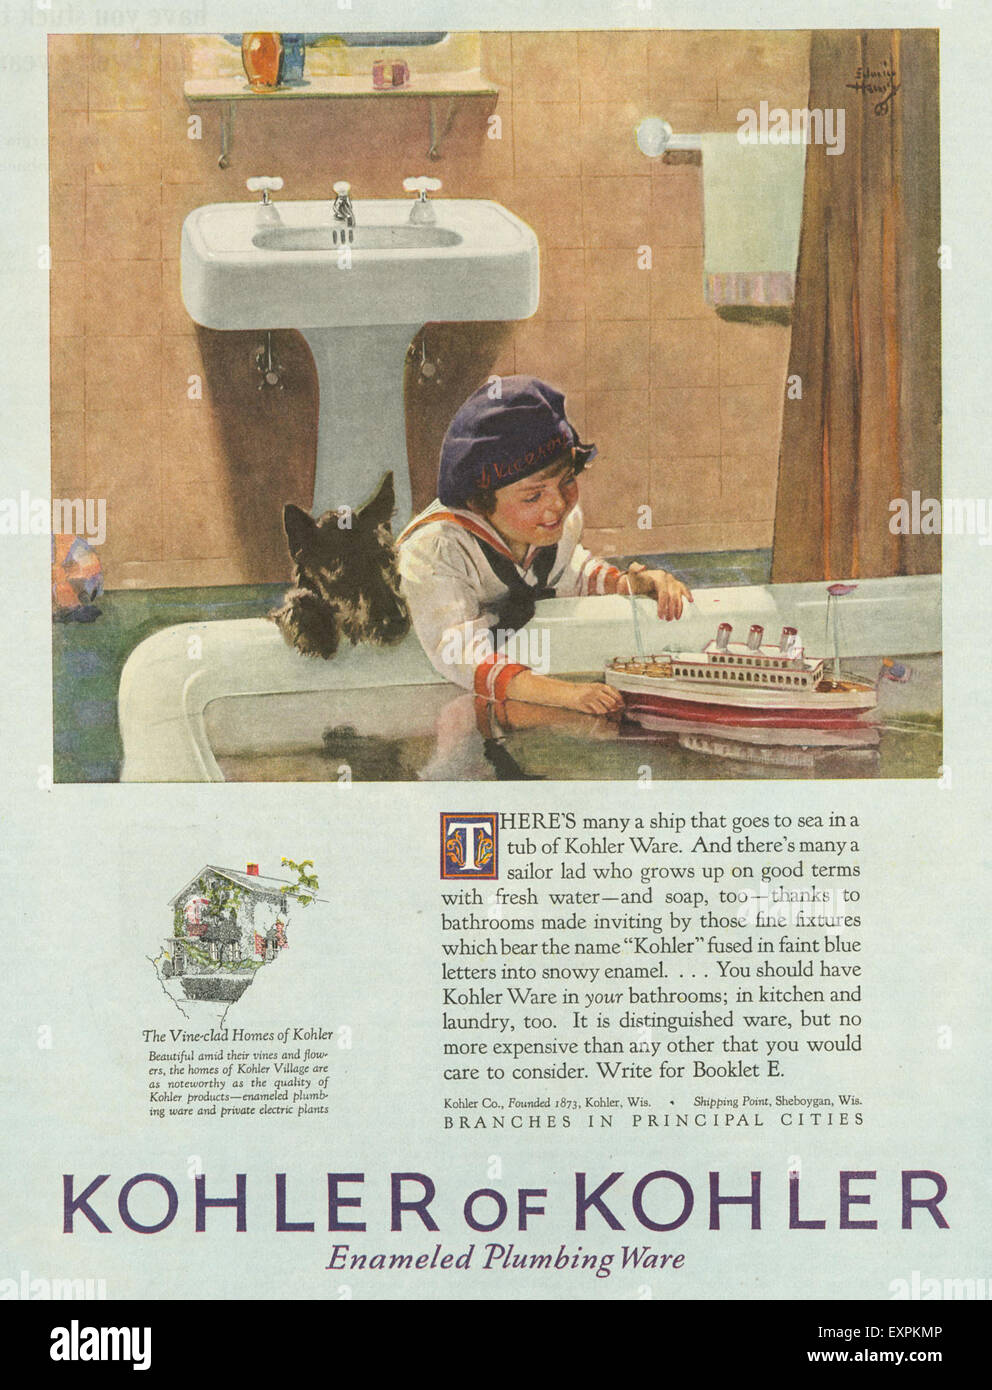 1920s USA Kohler Bathrooms Magazine Advert Stock Photo: 85320950 - Alamy